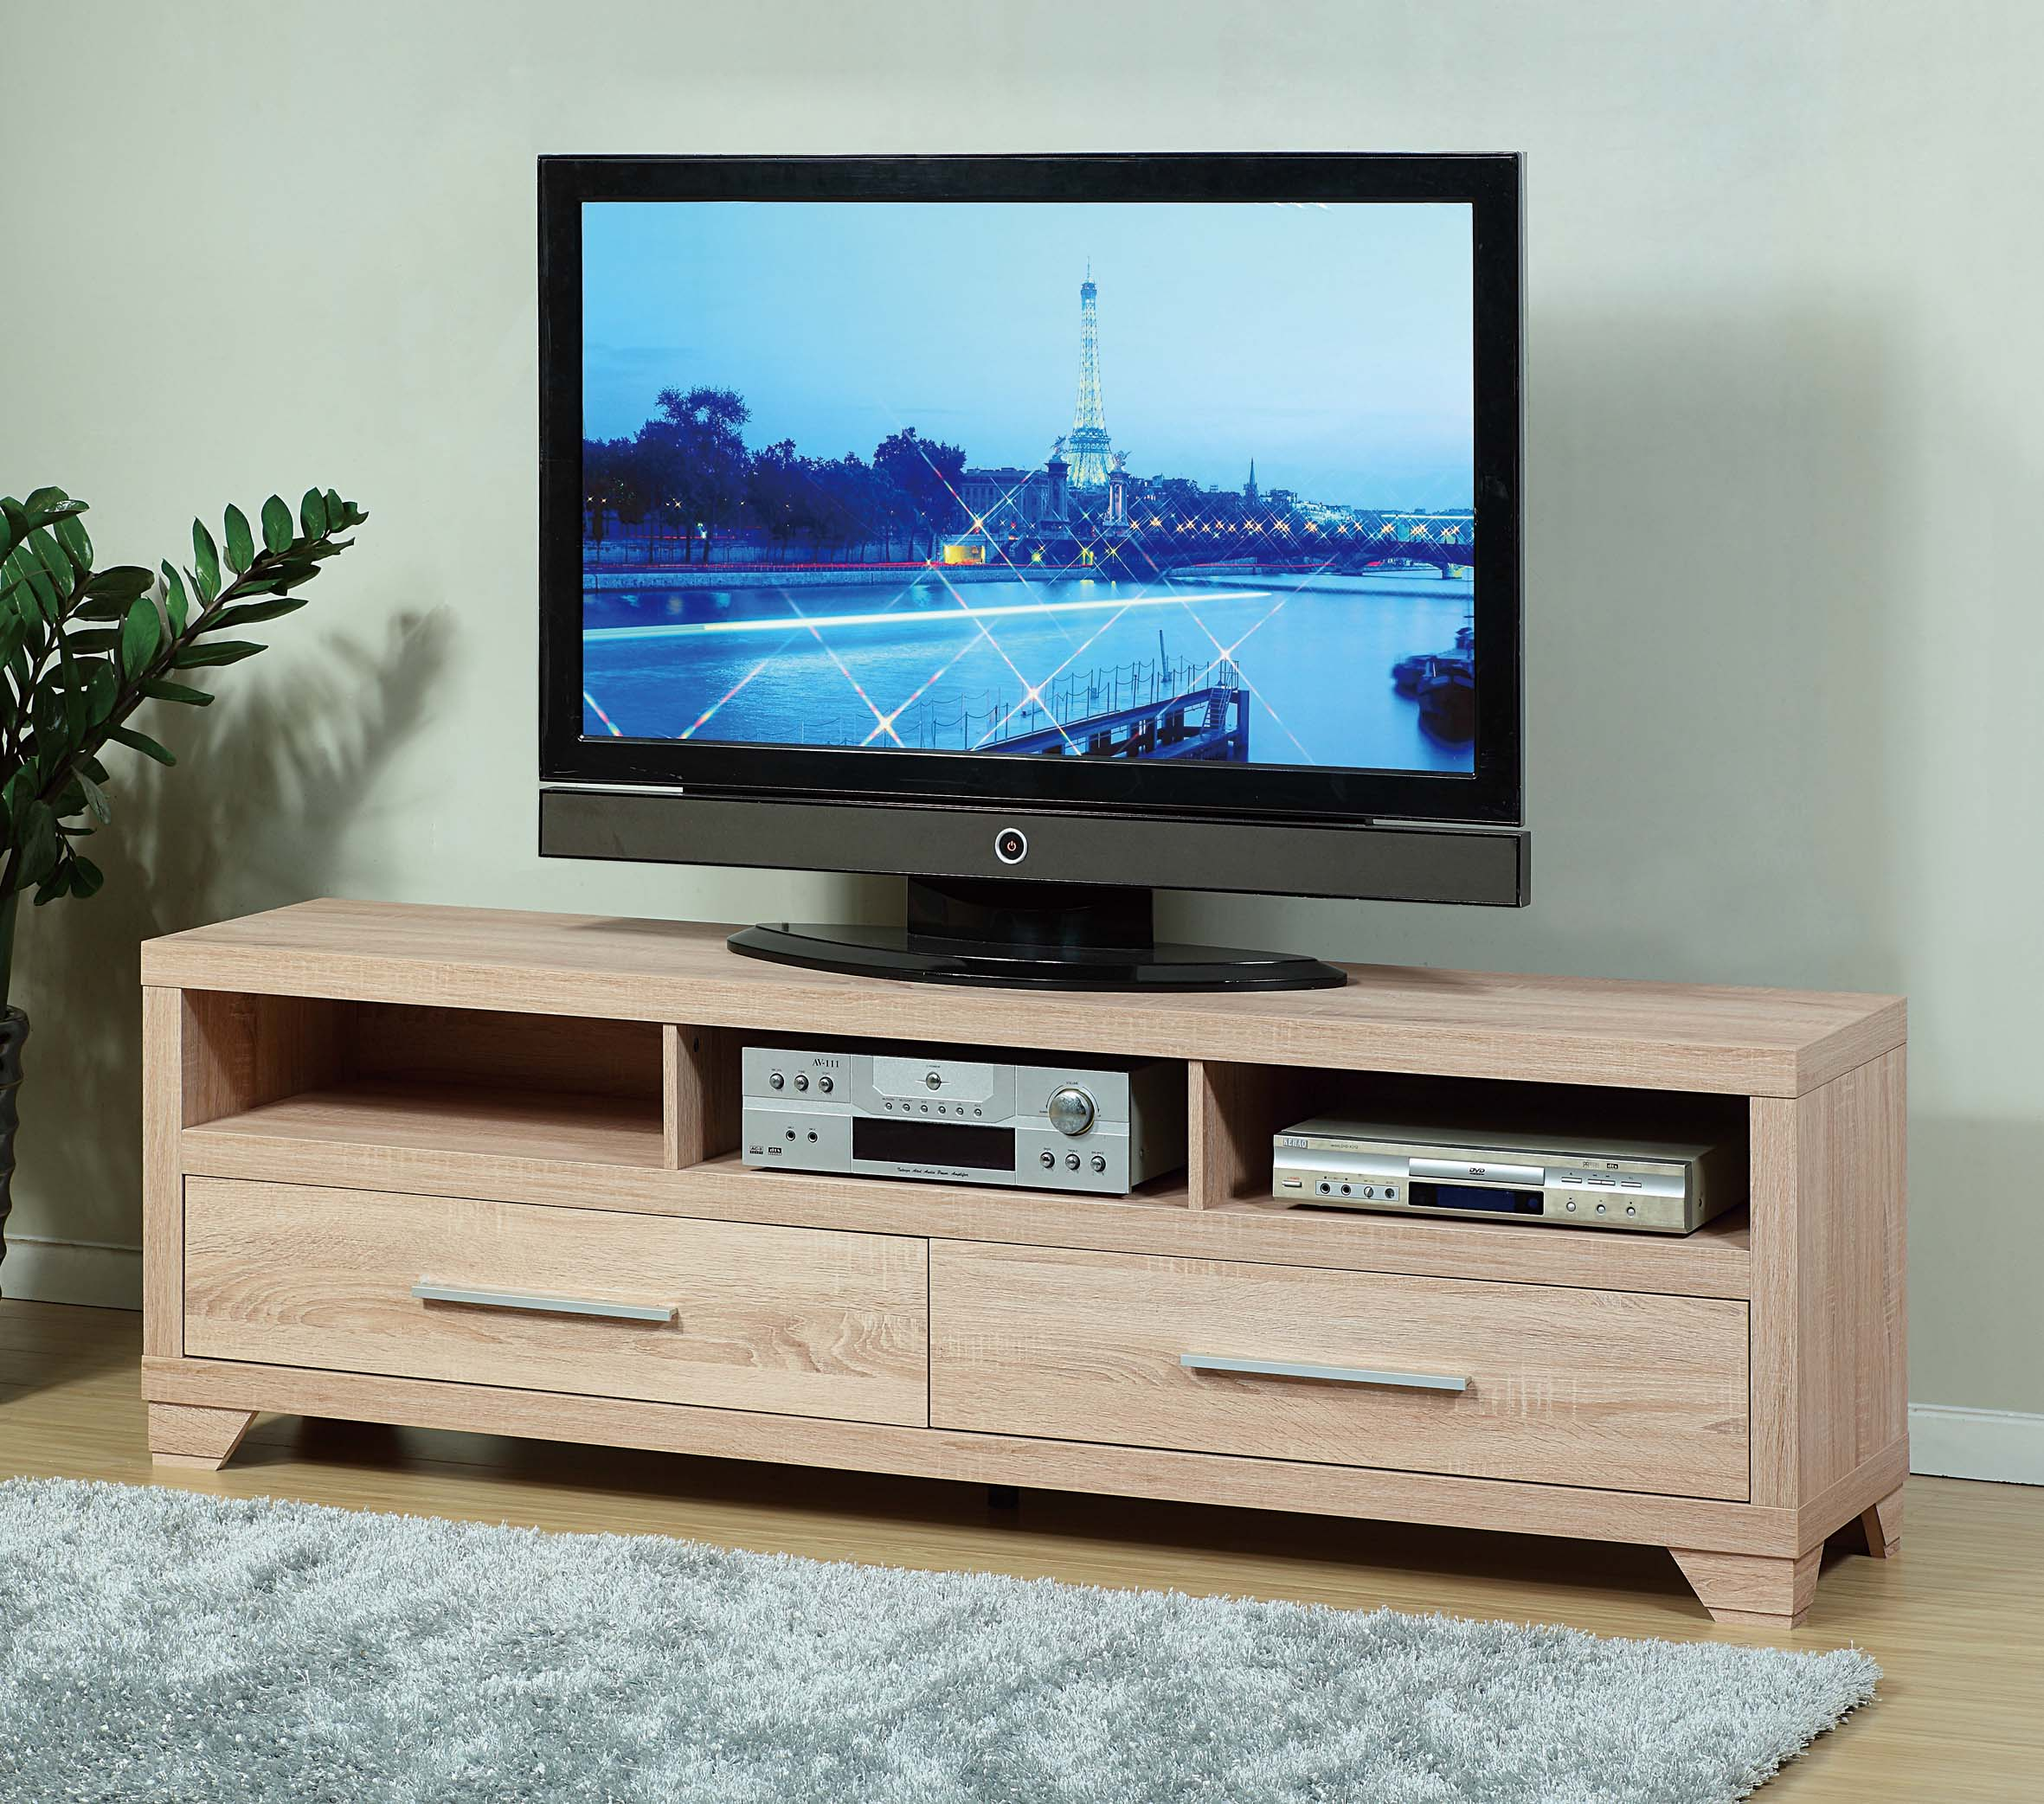 ID USA TV Stand #14842 – Furniture Mattress Los Angeles and El Monte